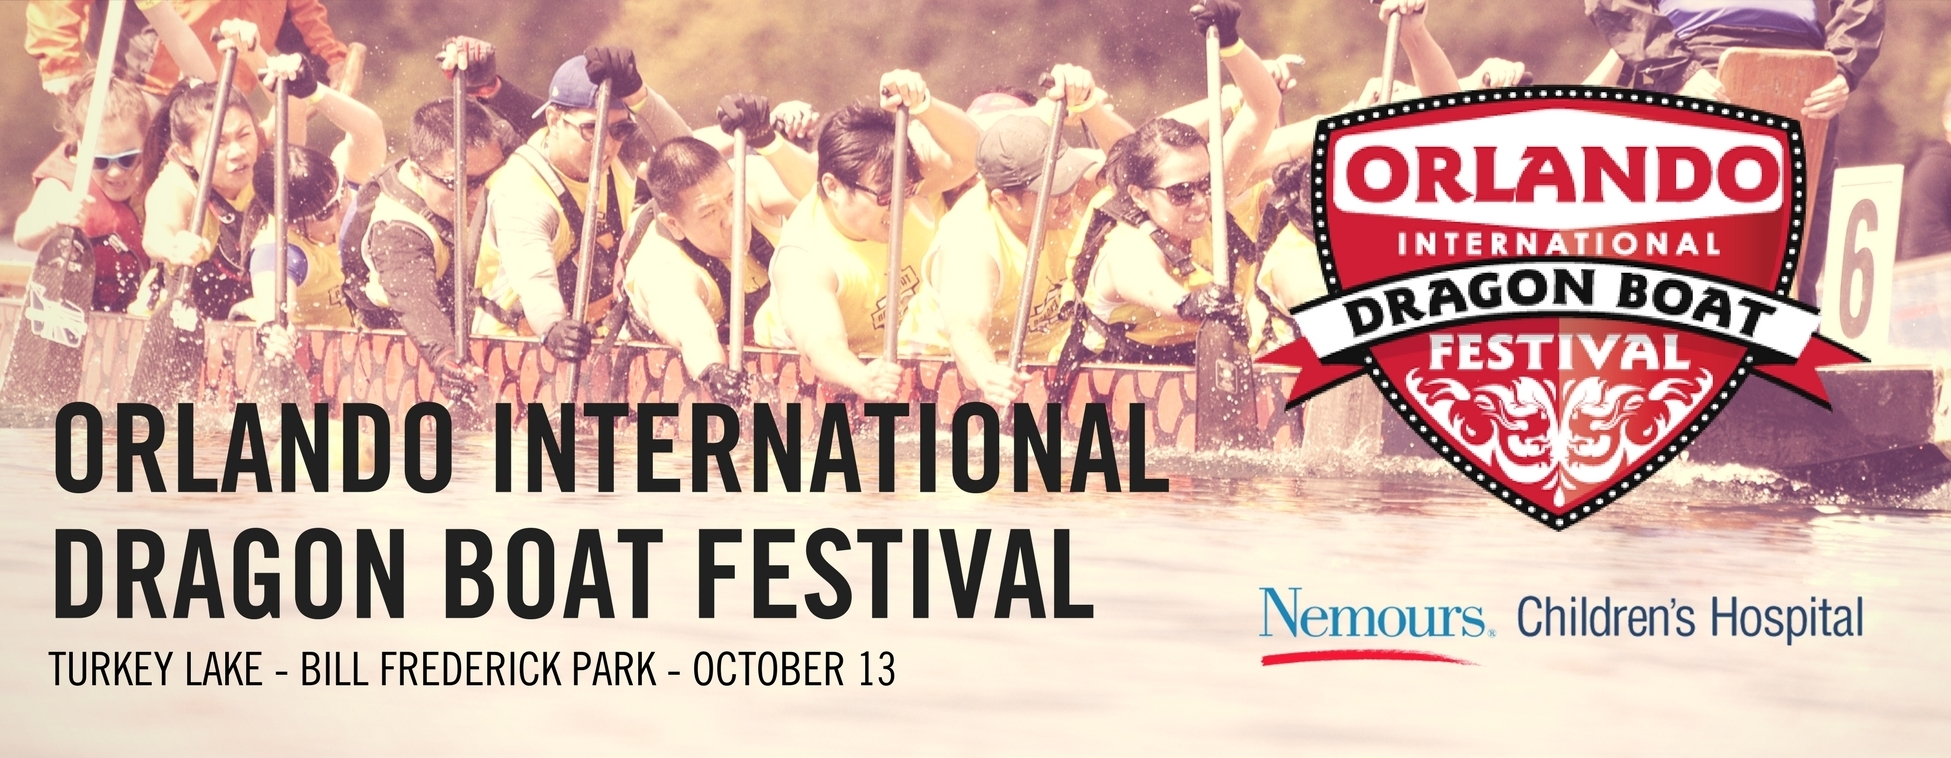 Orlando International Dragon Boat Festival